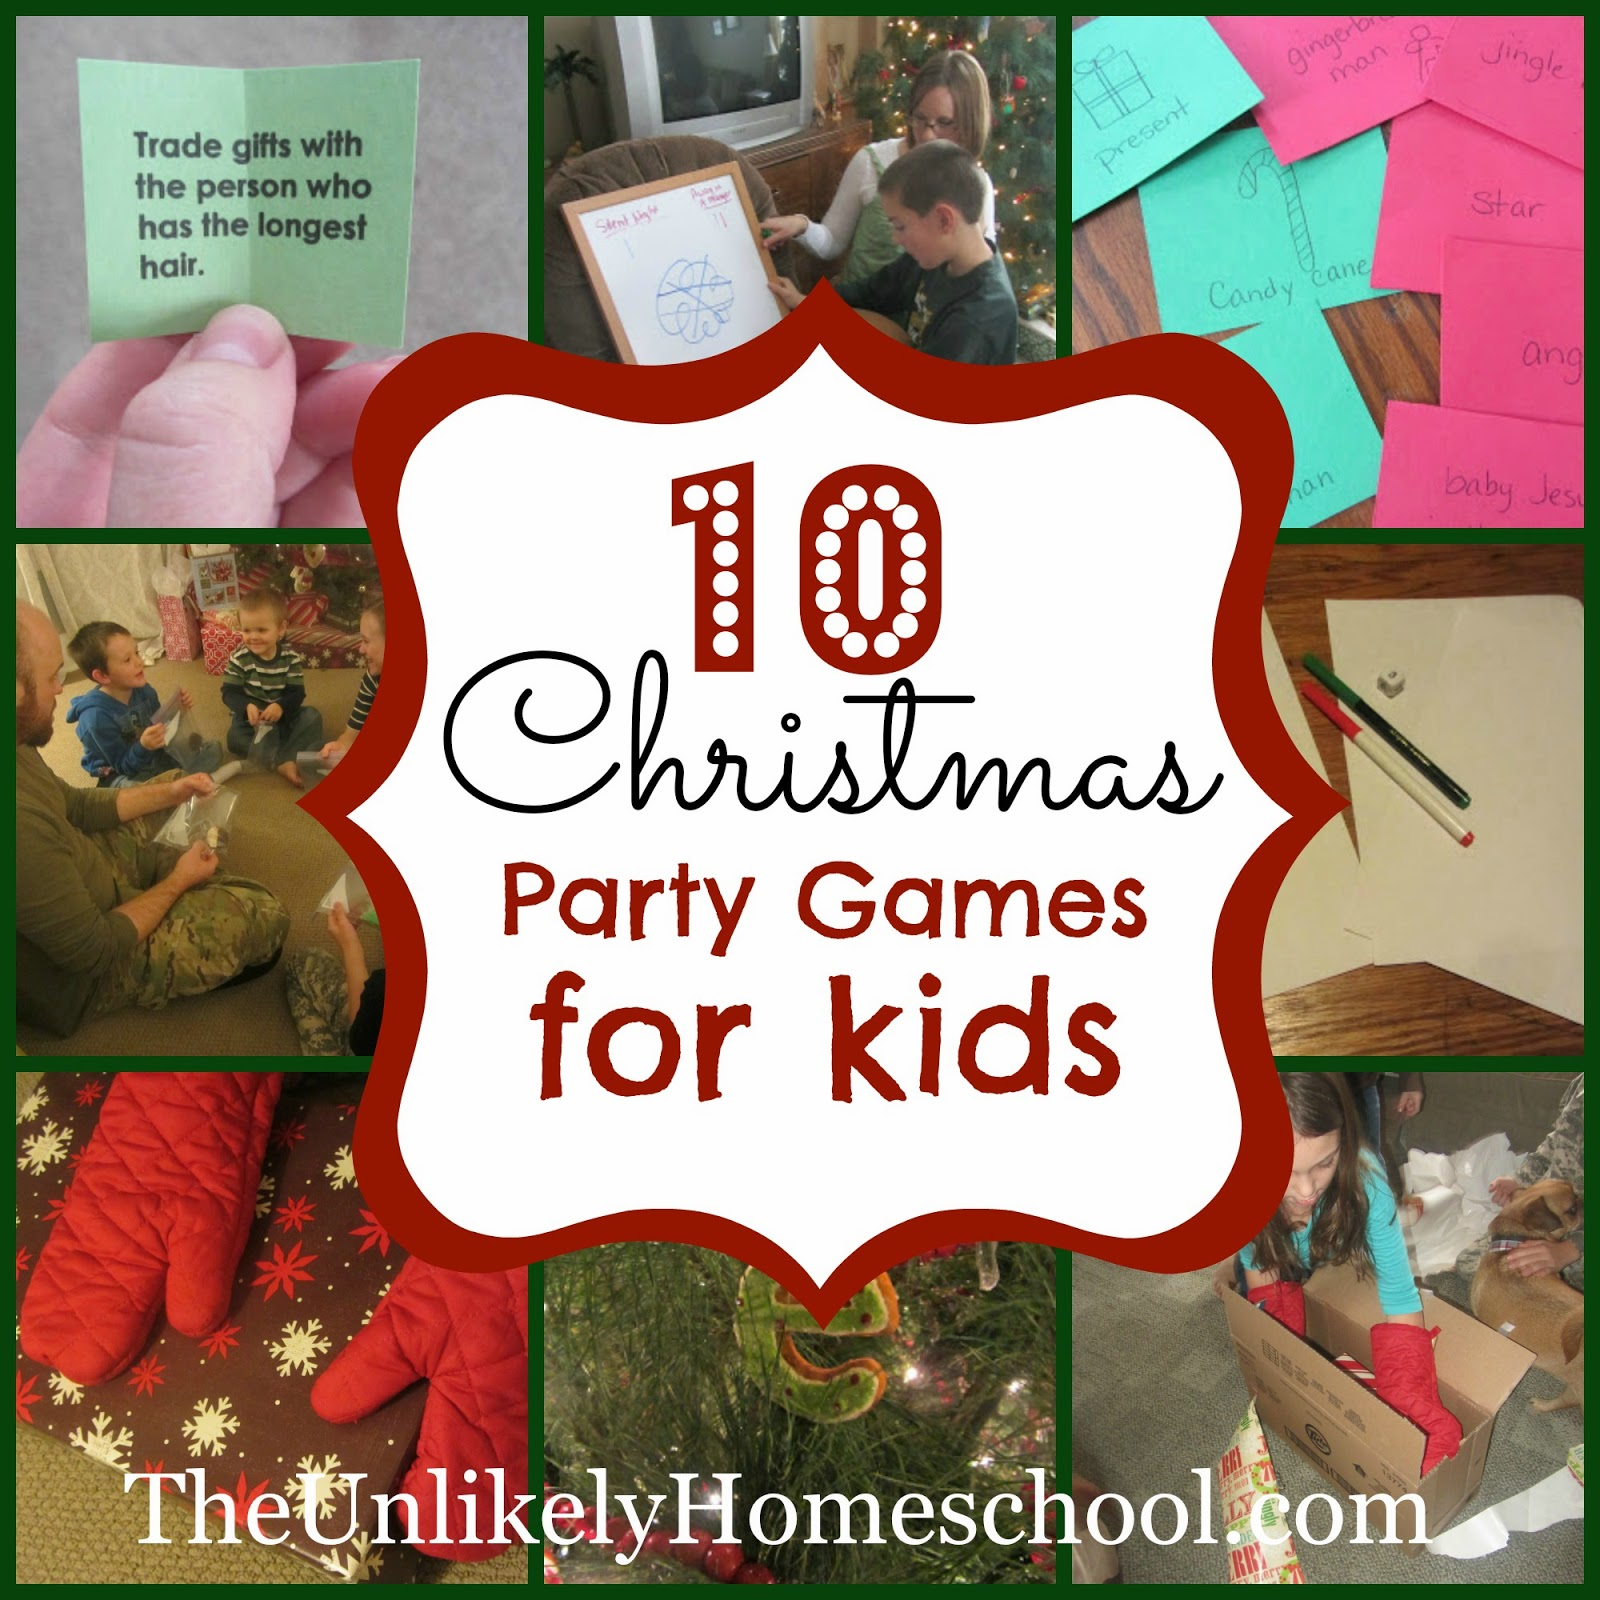 Fun Christmas Party Ideas For Adults: The Unlikely Homeschool: 10 Christmas Party Games For Kids